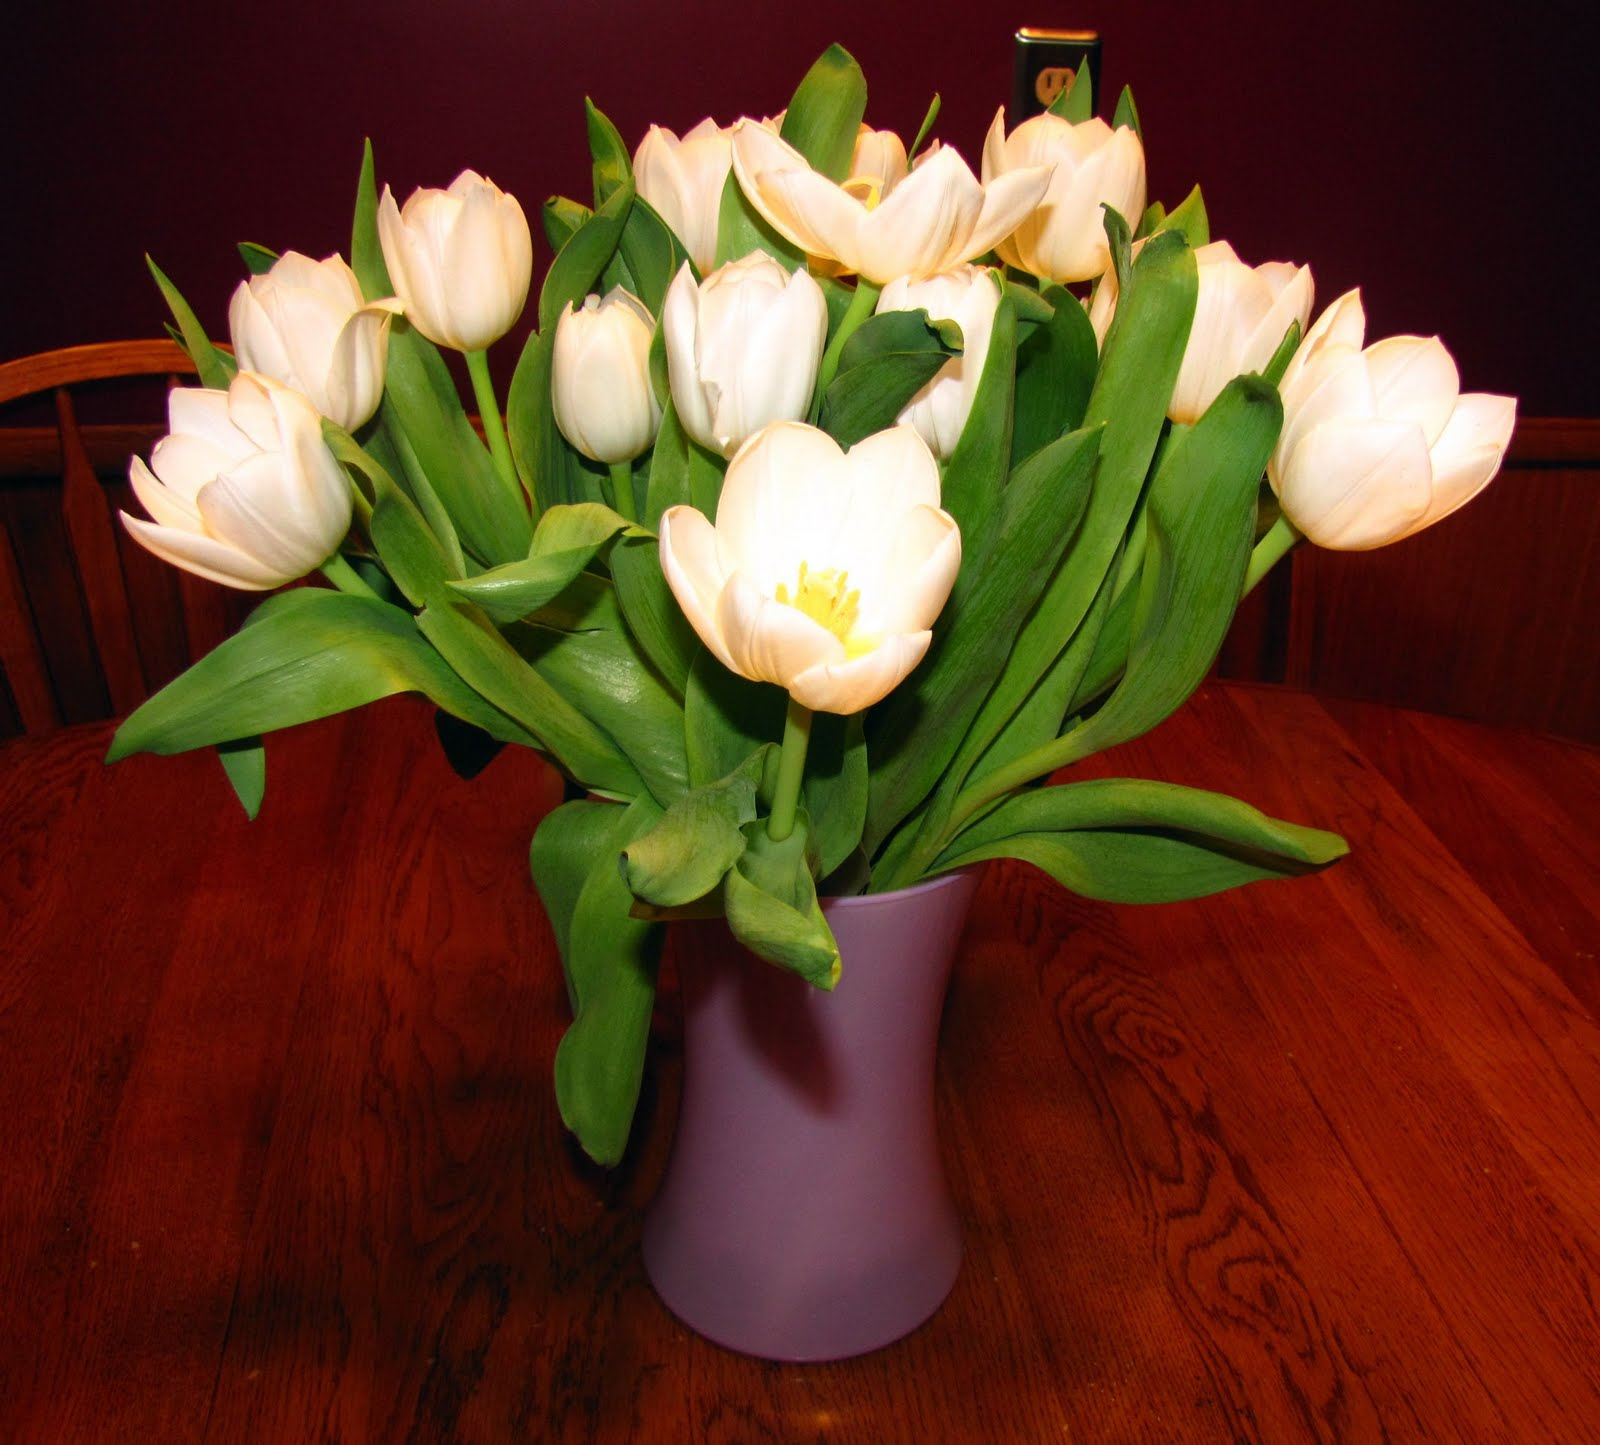 Celebrating mom 8 proflowers review 50 gc giveaway as i said the tulips are sent fresh from the fields and arrive in bud form thus they open to reveal their absolute beauty only after arrival reviewsmspy